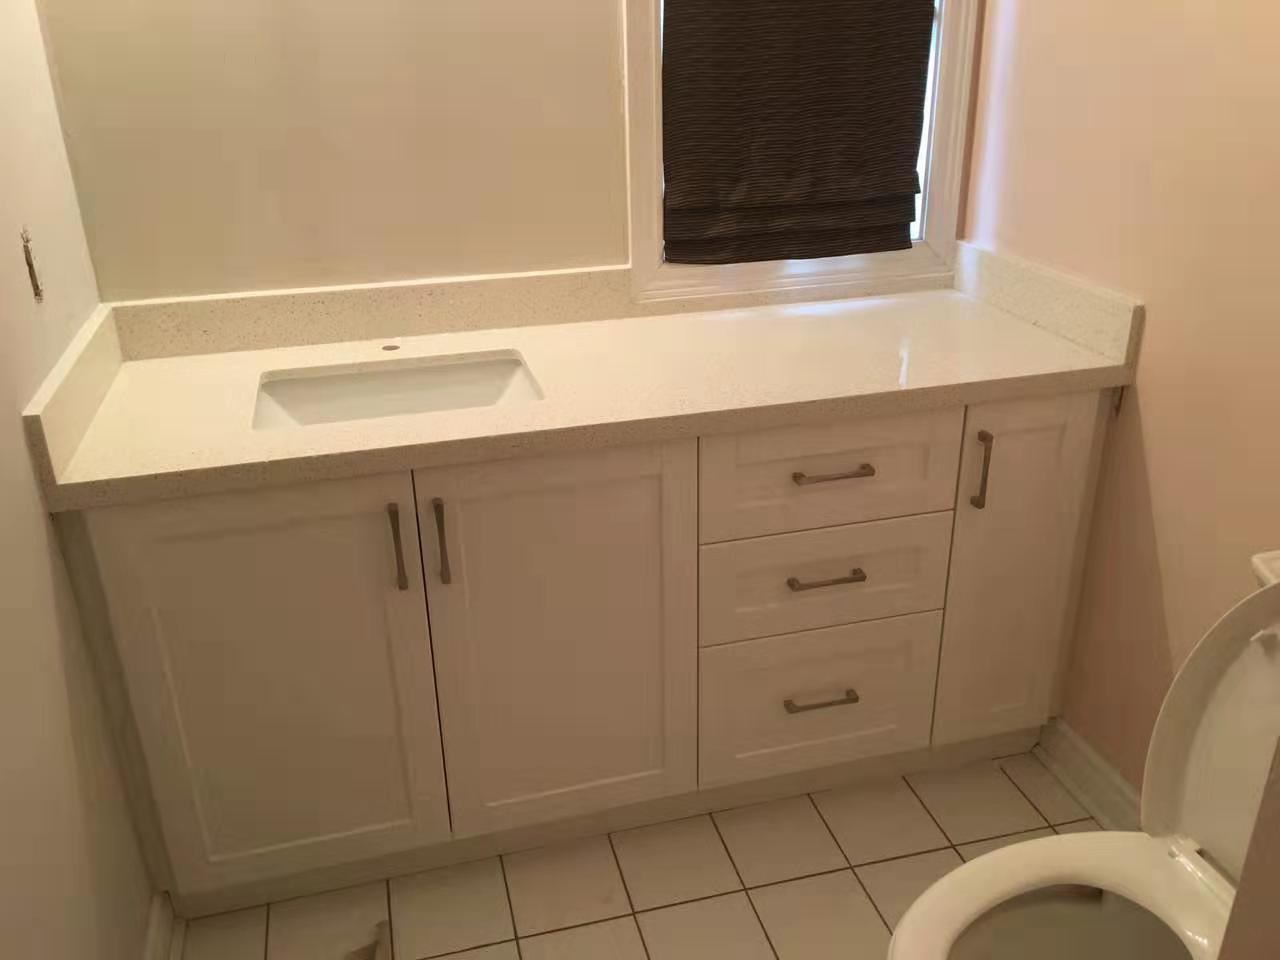 PVC vanity, quartz top with backsplash